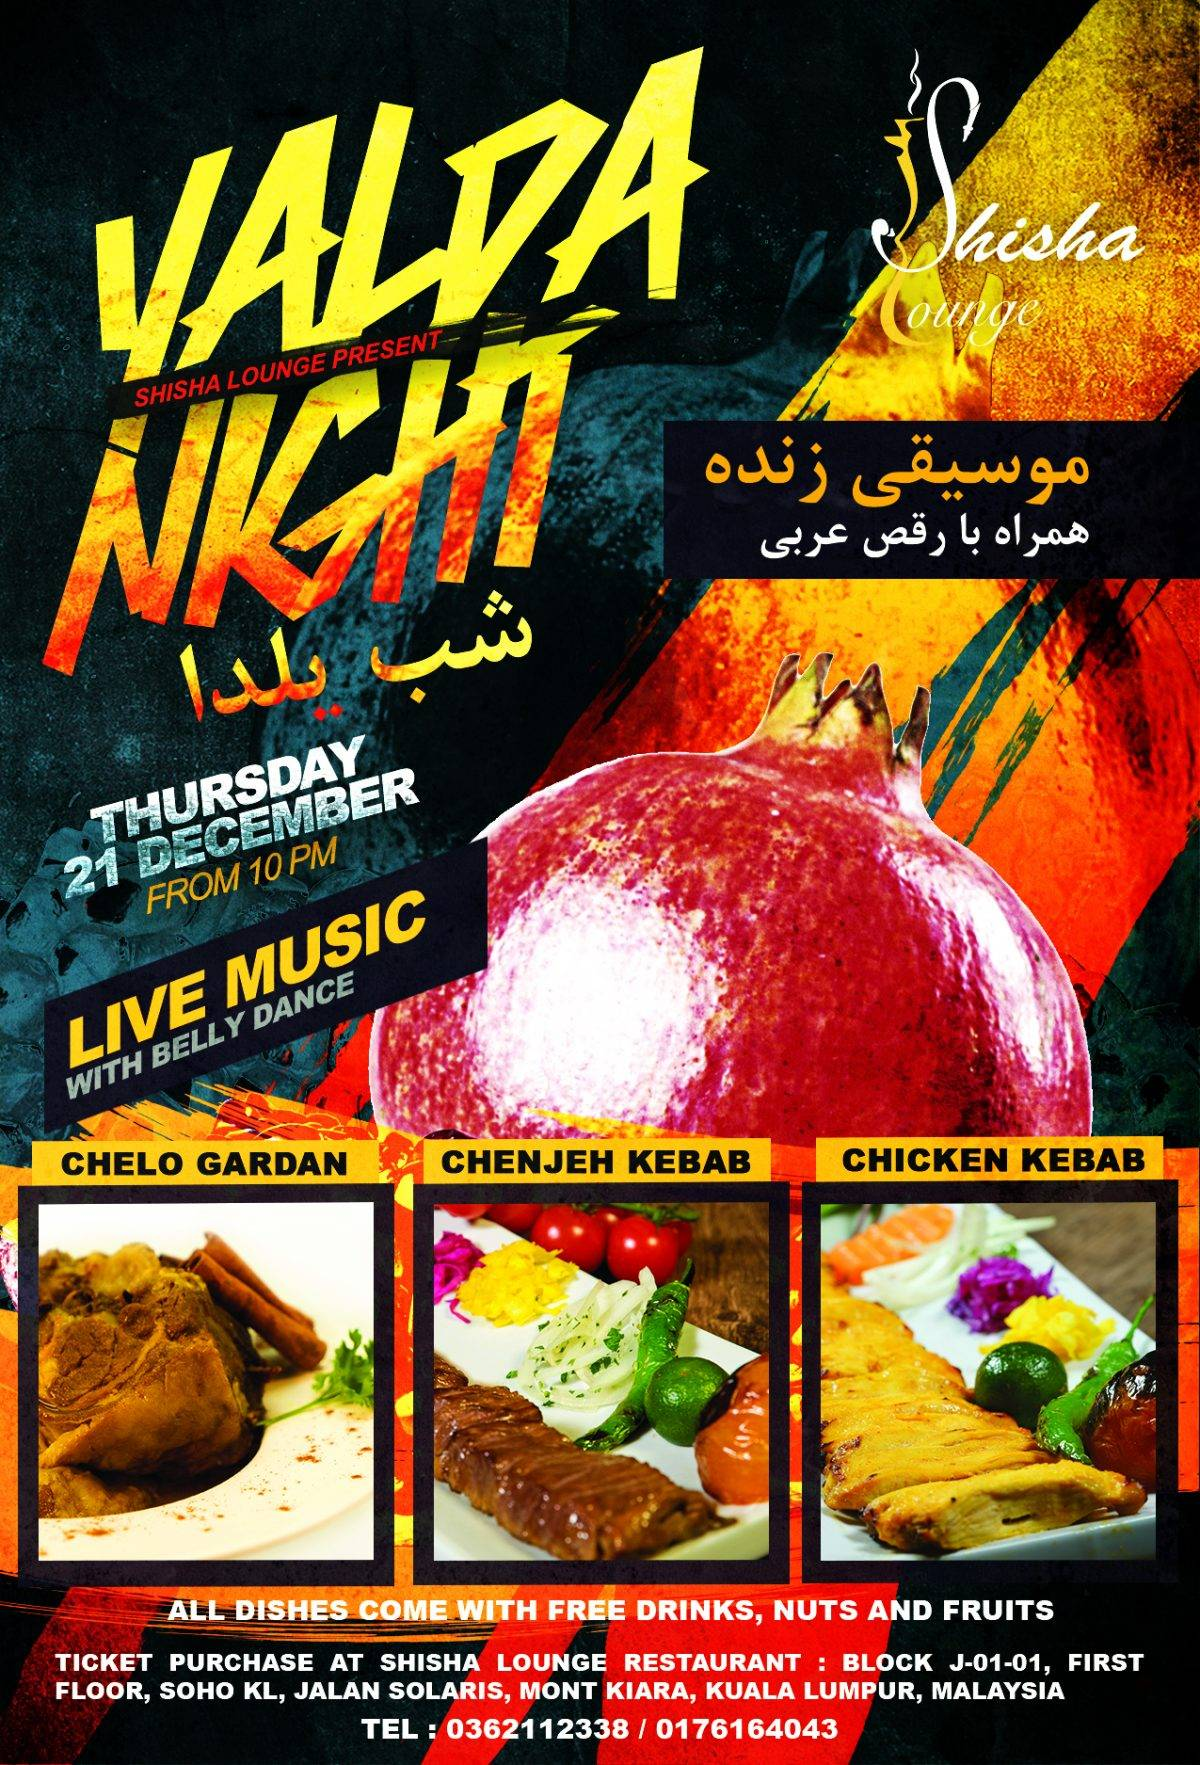 Yalda Night Event at Shisha Lounge Restaurant